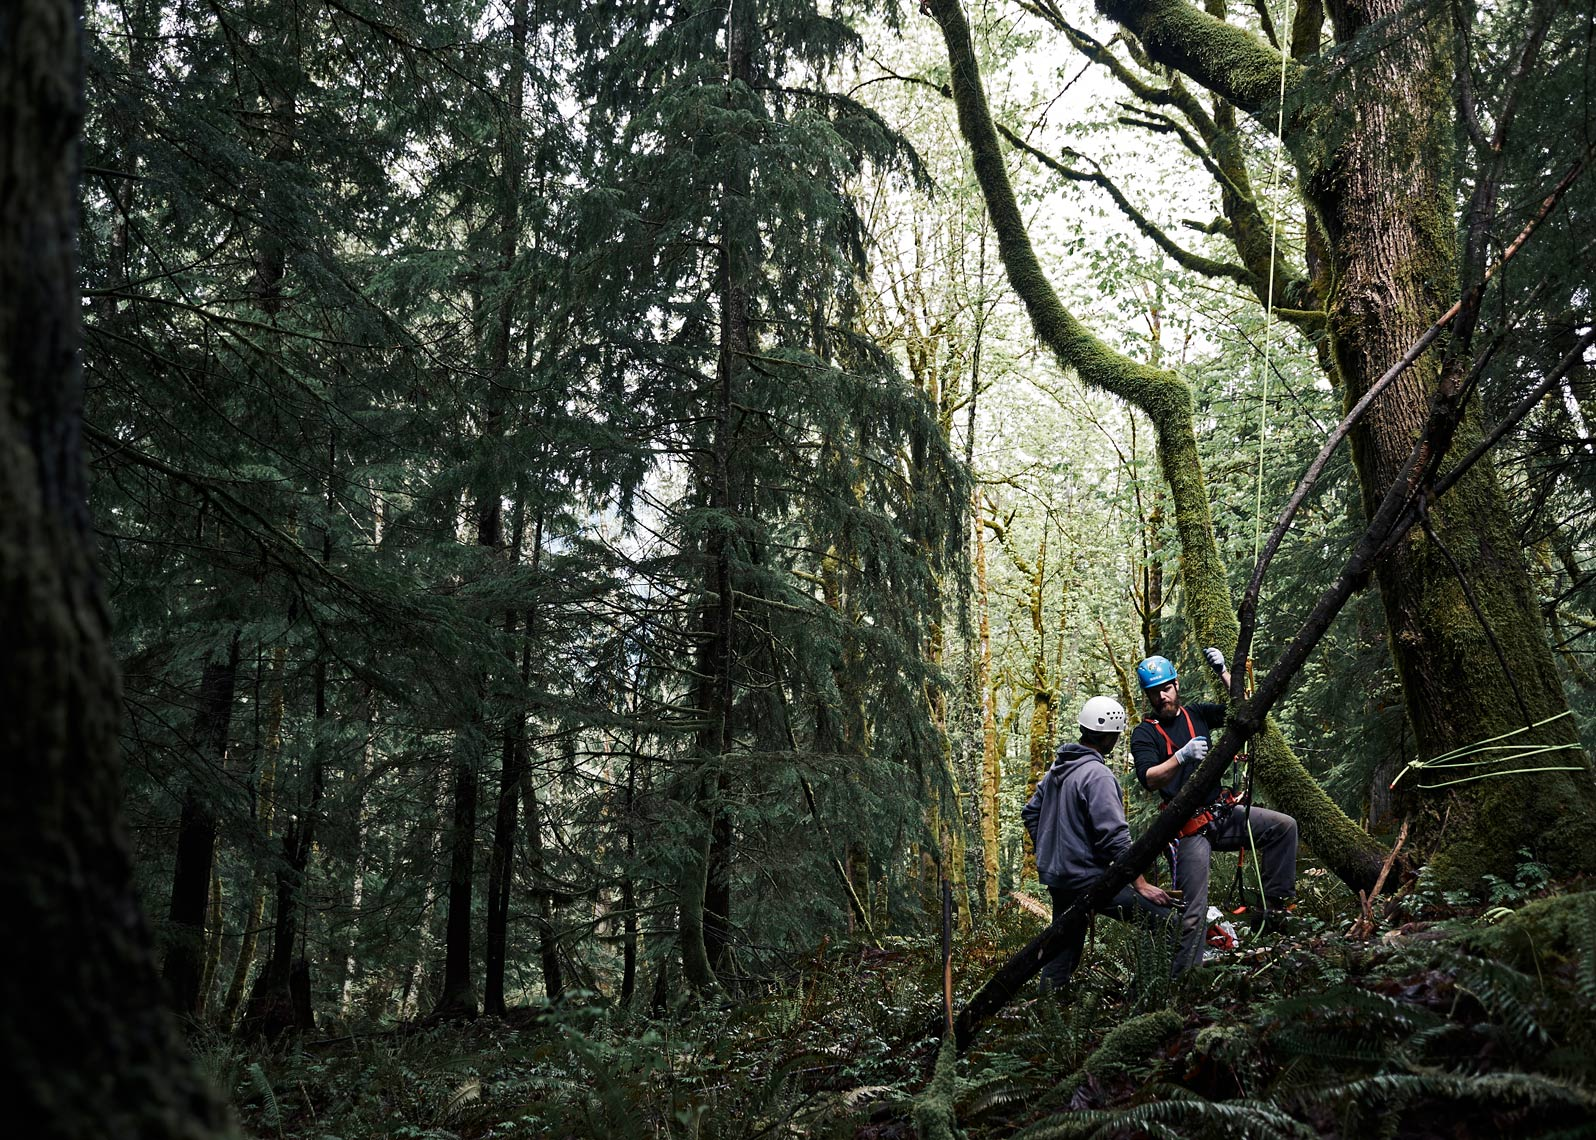 Tree climbers are photographed in this environmental workplace photo